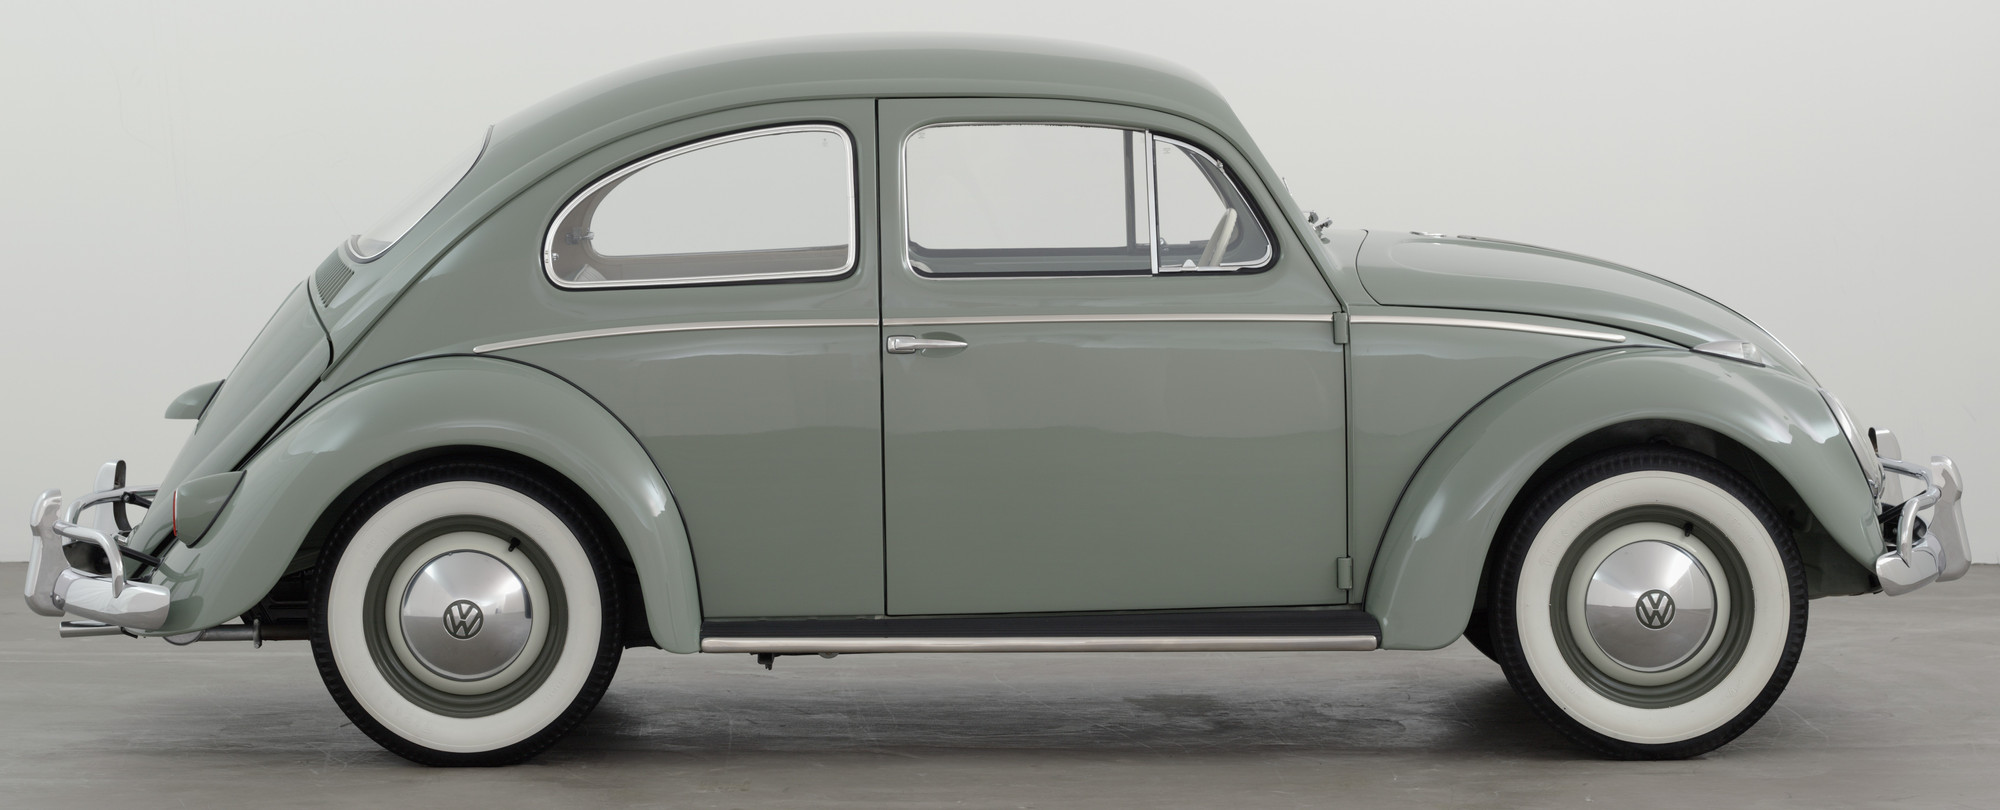 Ferdinand Porsche, Volkswagenwerk, Germany. Volkswagen Type 1 Sedan. designed 1938  (this example1959)